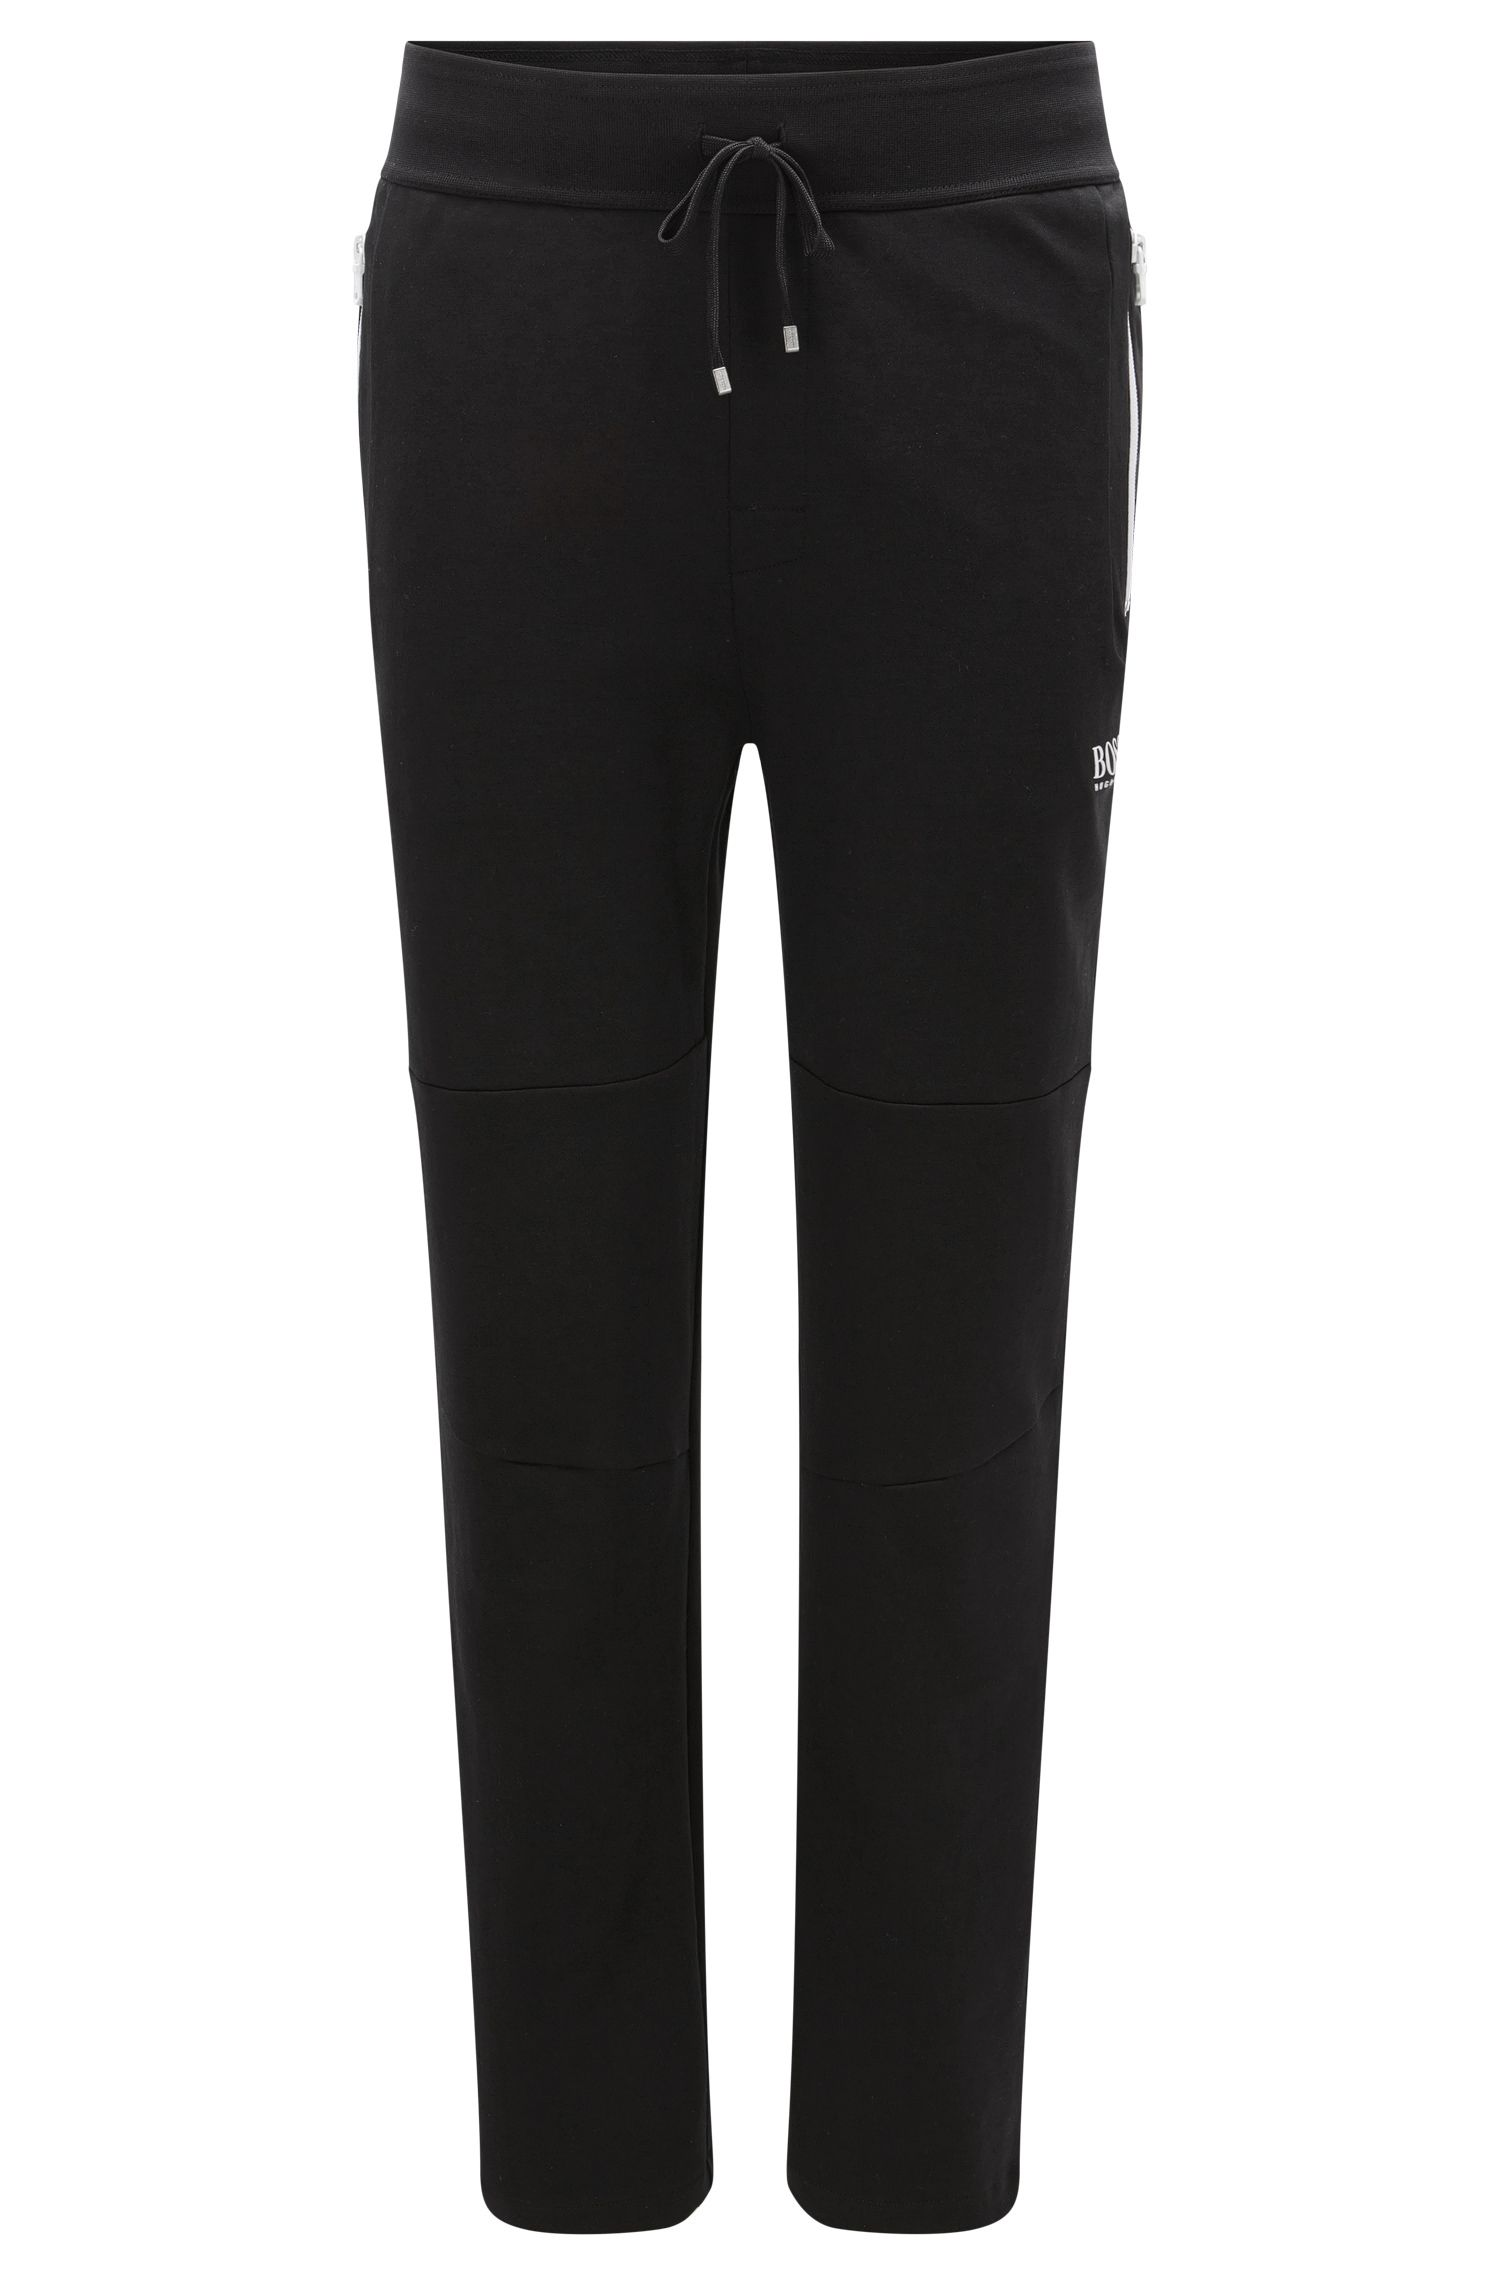 'Long Pant' | Tracksuit Bottoms in Cotton Blend with Contrasting Color Zips